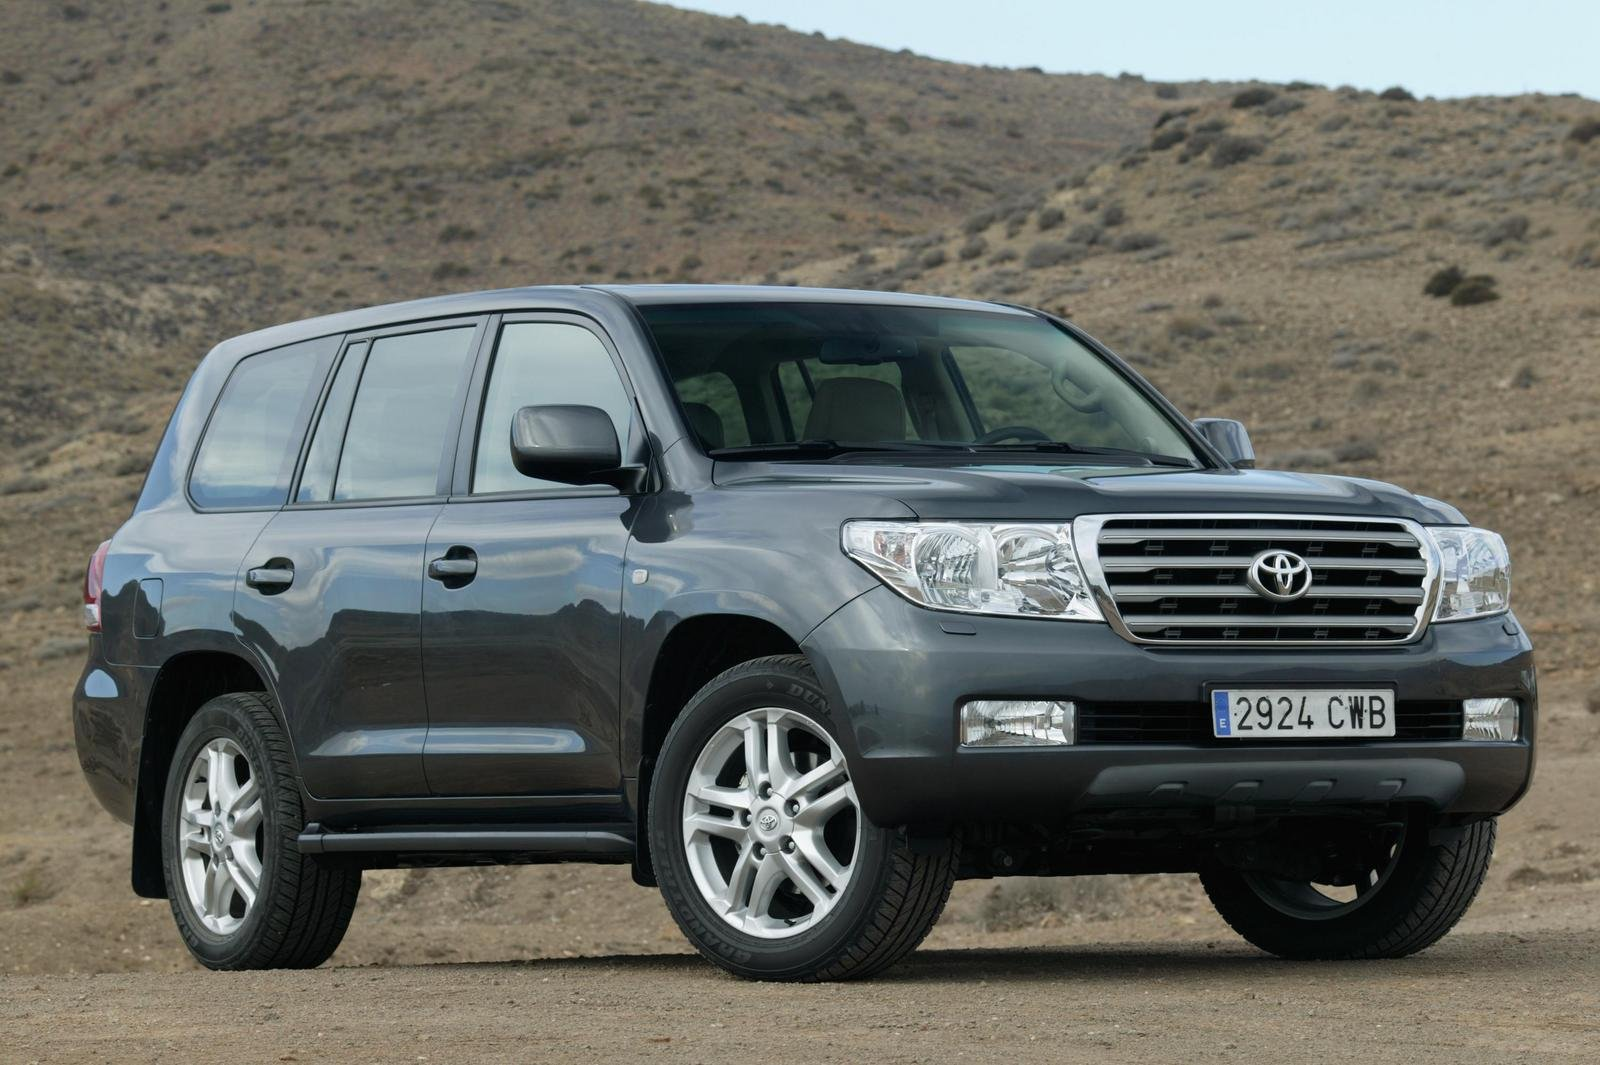 2008 toyota land cruiser v8 picture 219422 car review top speed. Black Bedroom Furniture Sets. Home Design Ideas